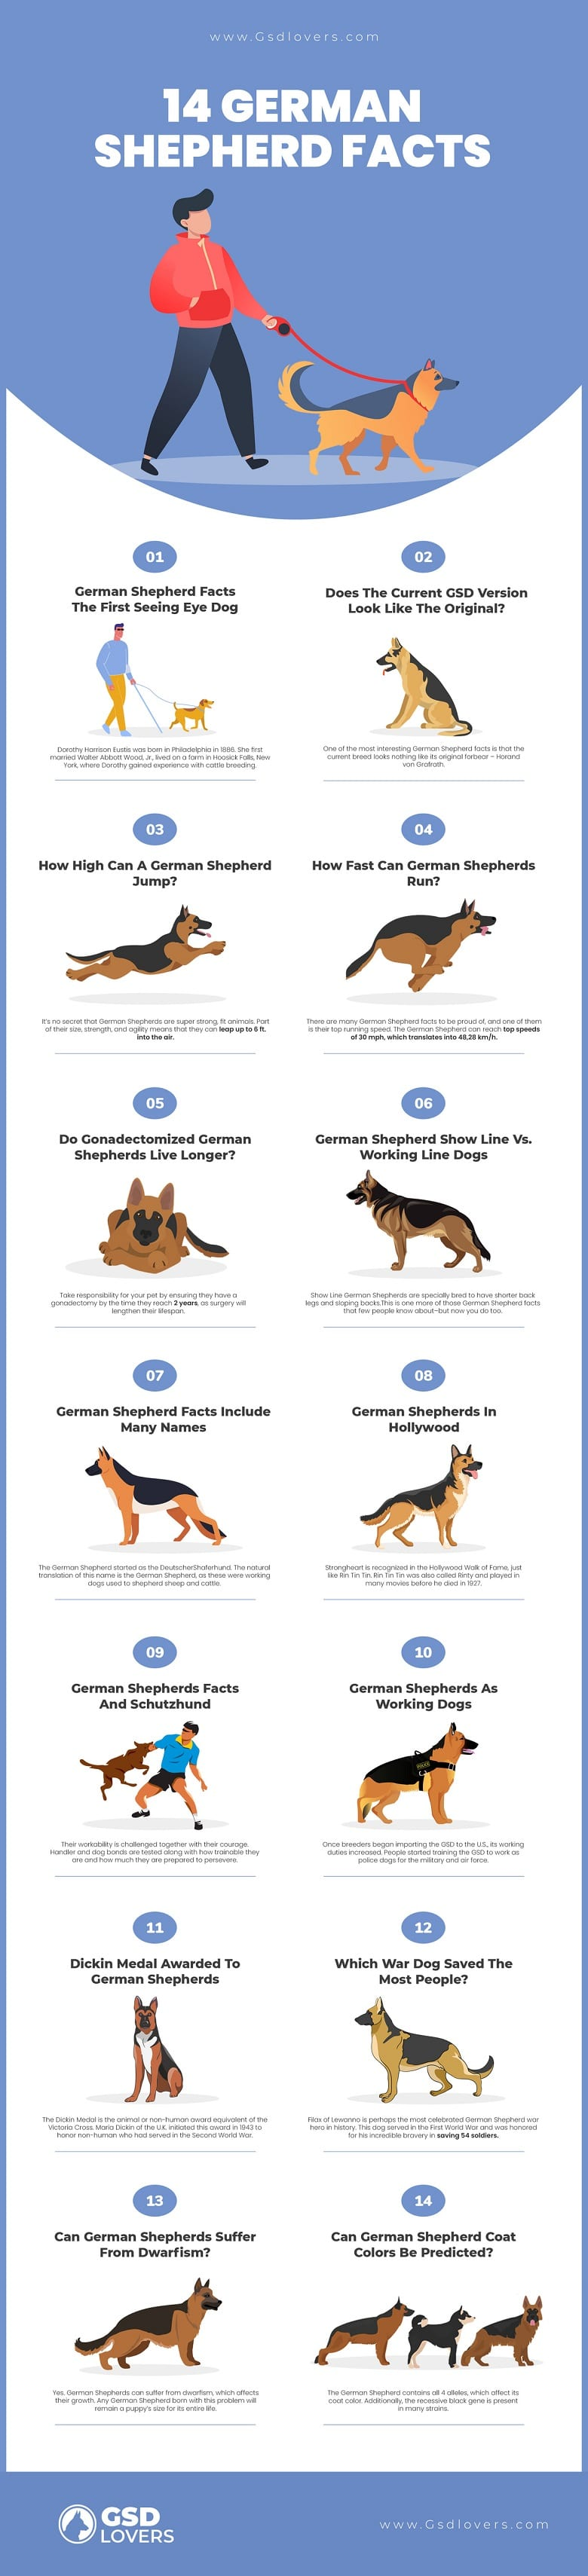 GSD Facts